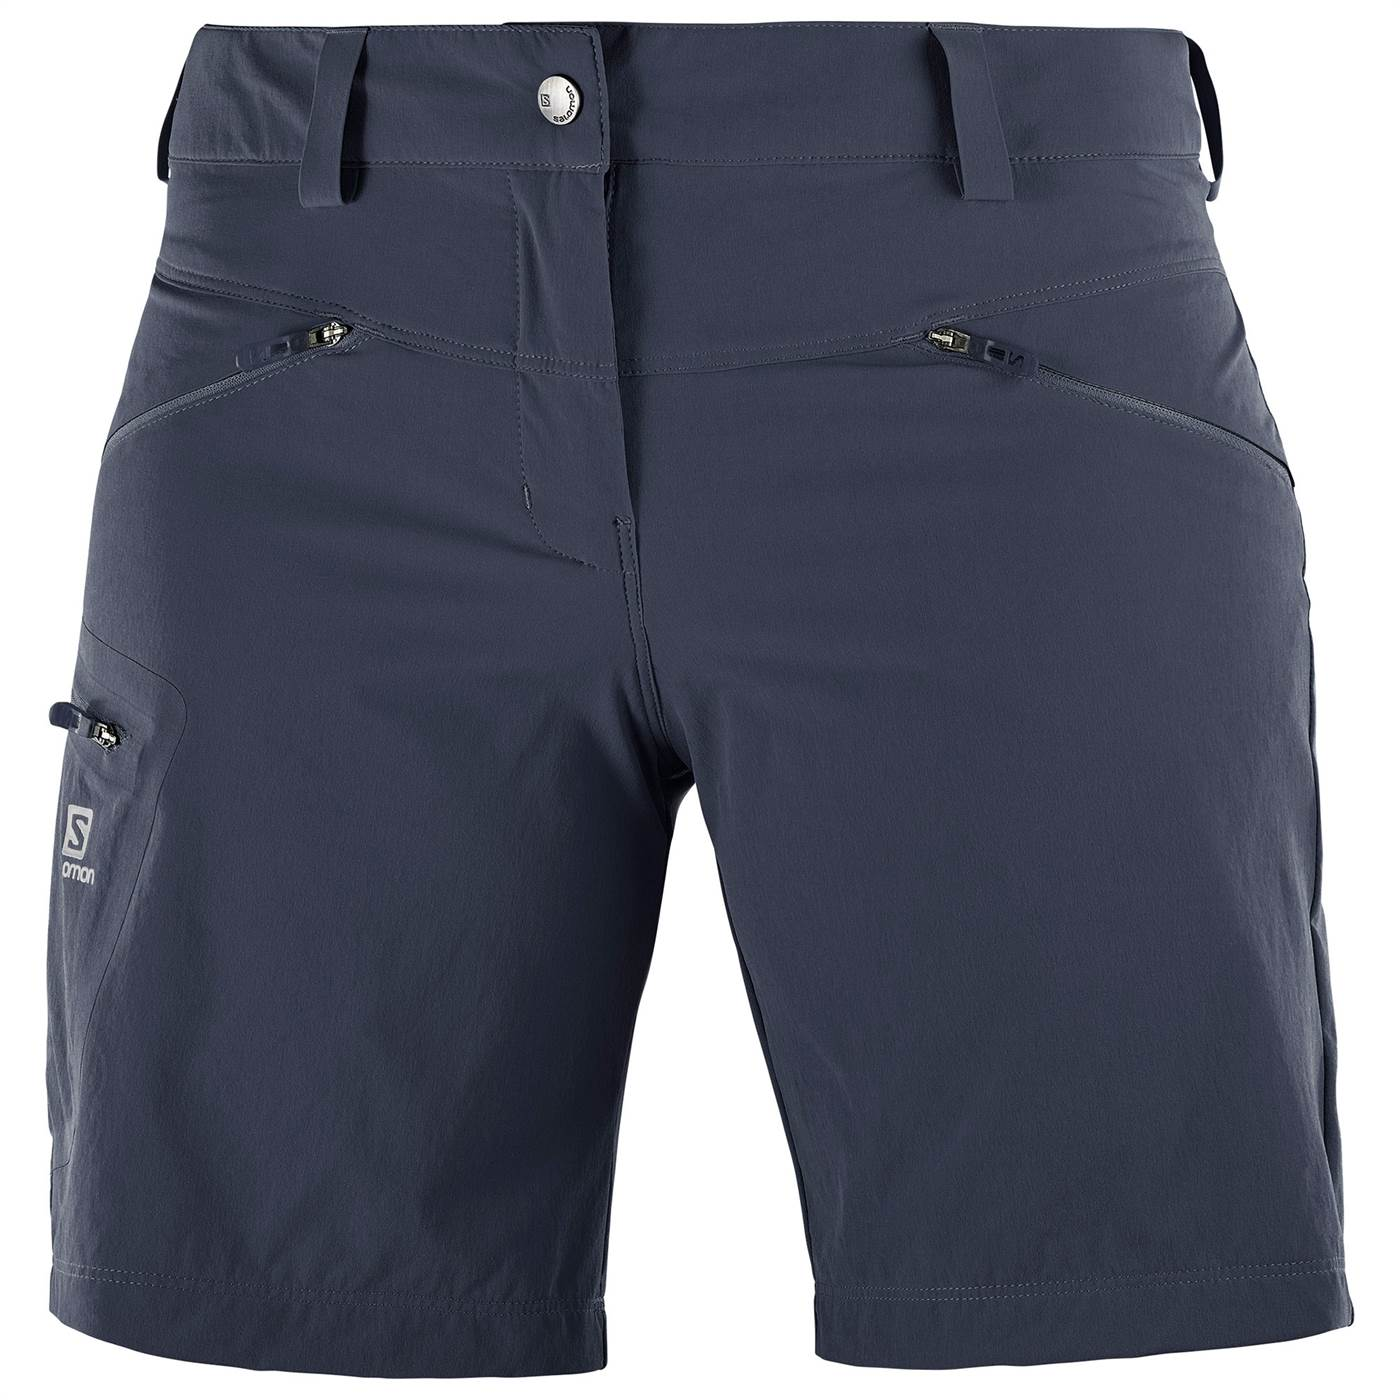 Wayfarer Short Graphite - Women's